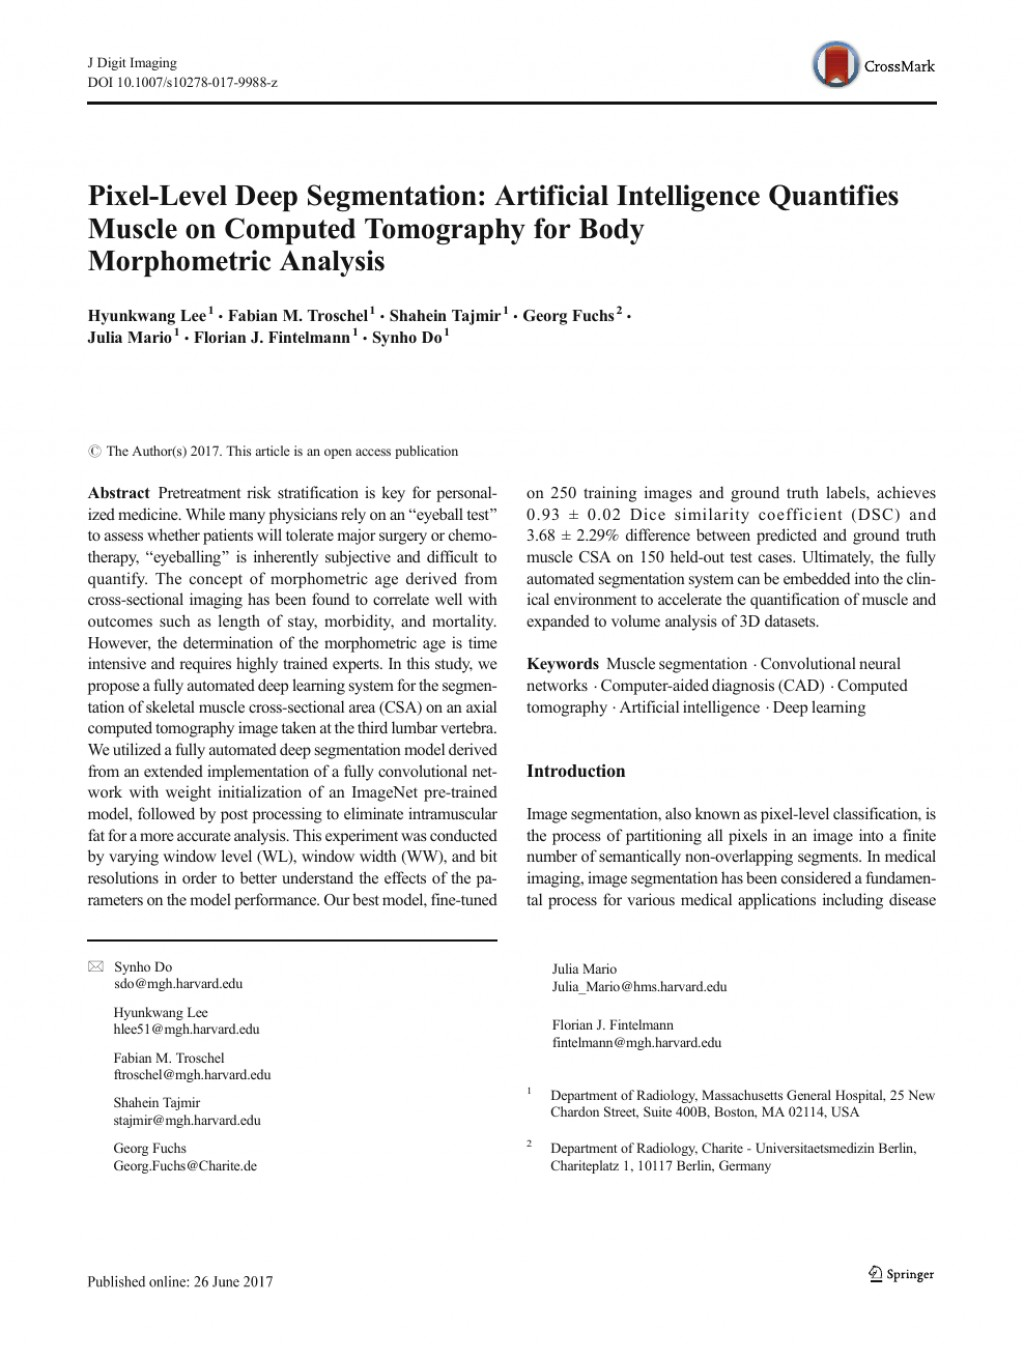 003 Research Paper Artificial Intelligence Awful 2019 Large